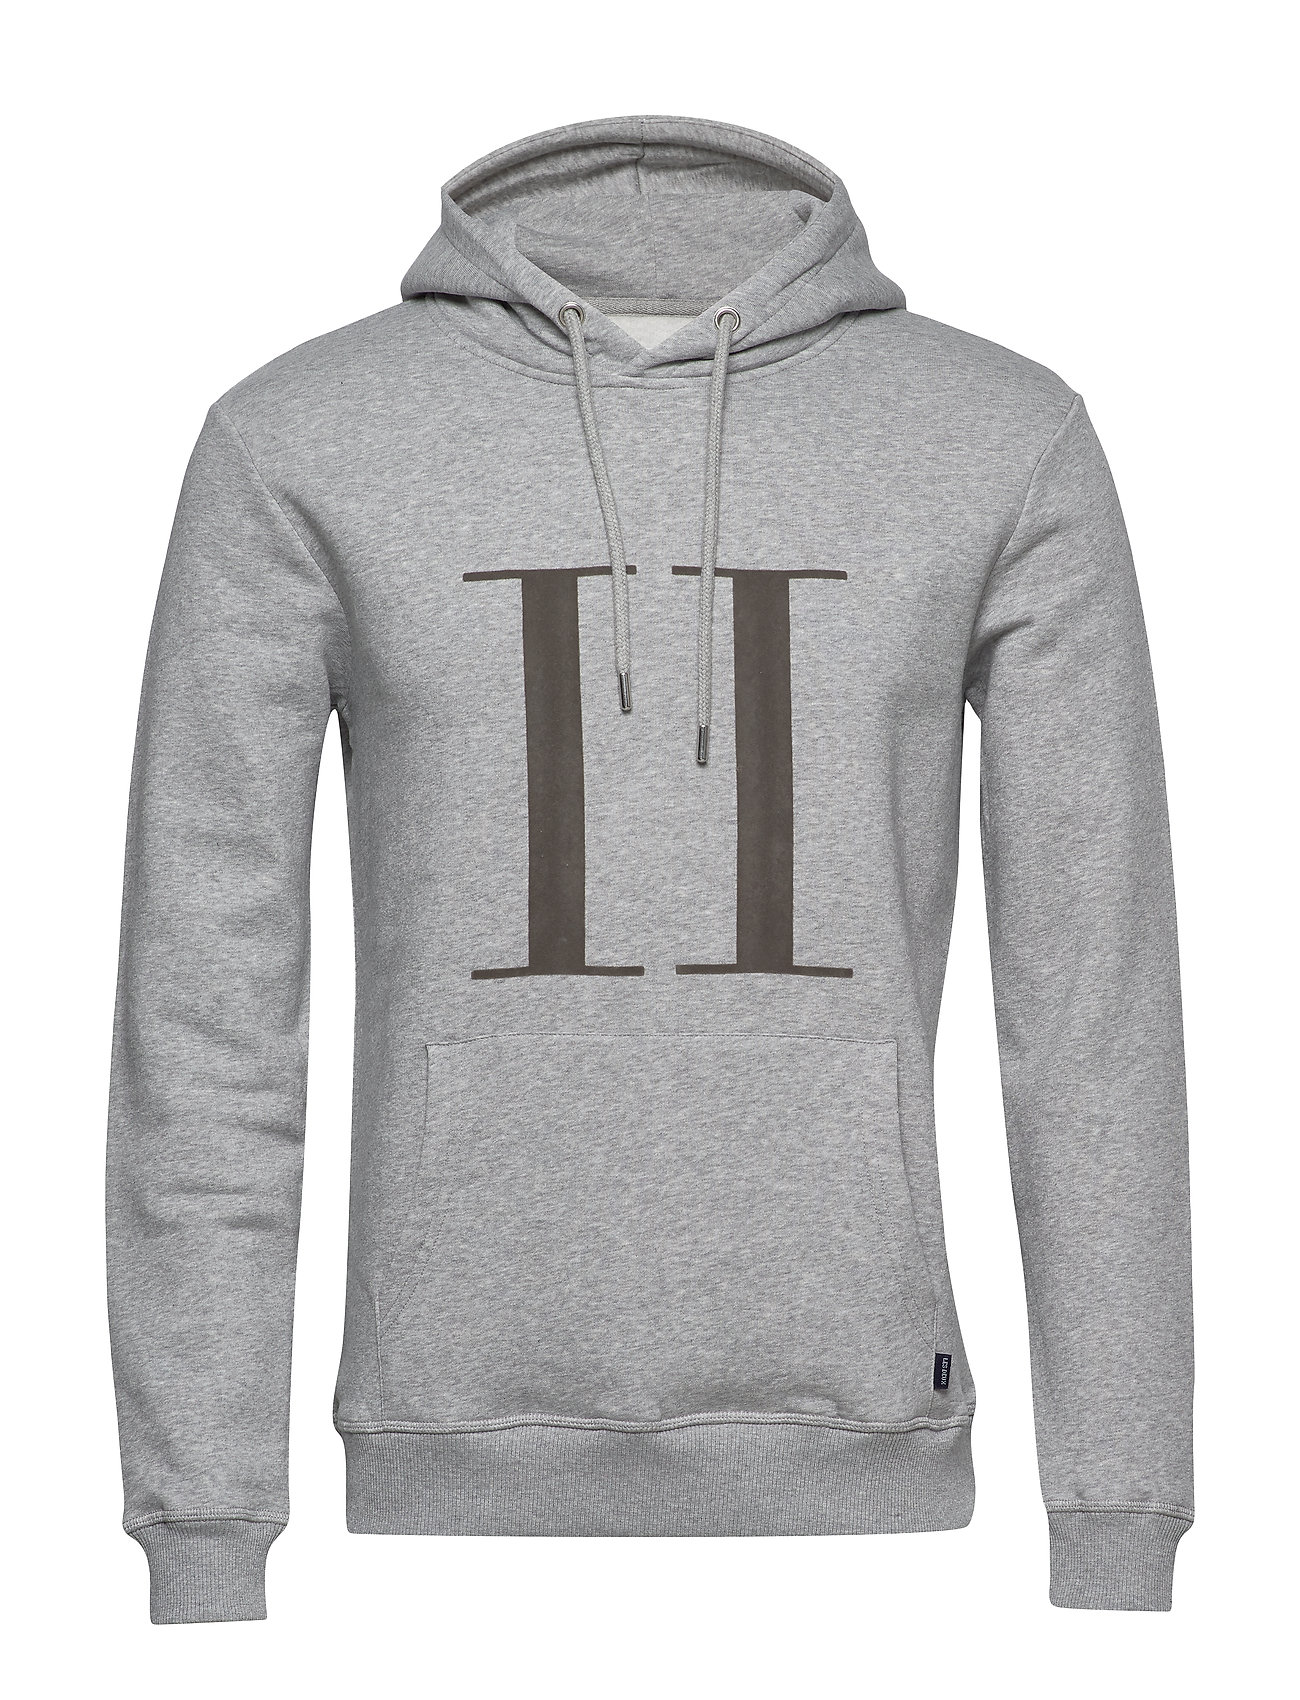 Les Deux Encore Hoodie - LIGHT GREY MELANGE/MEDIUM GREY